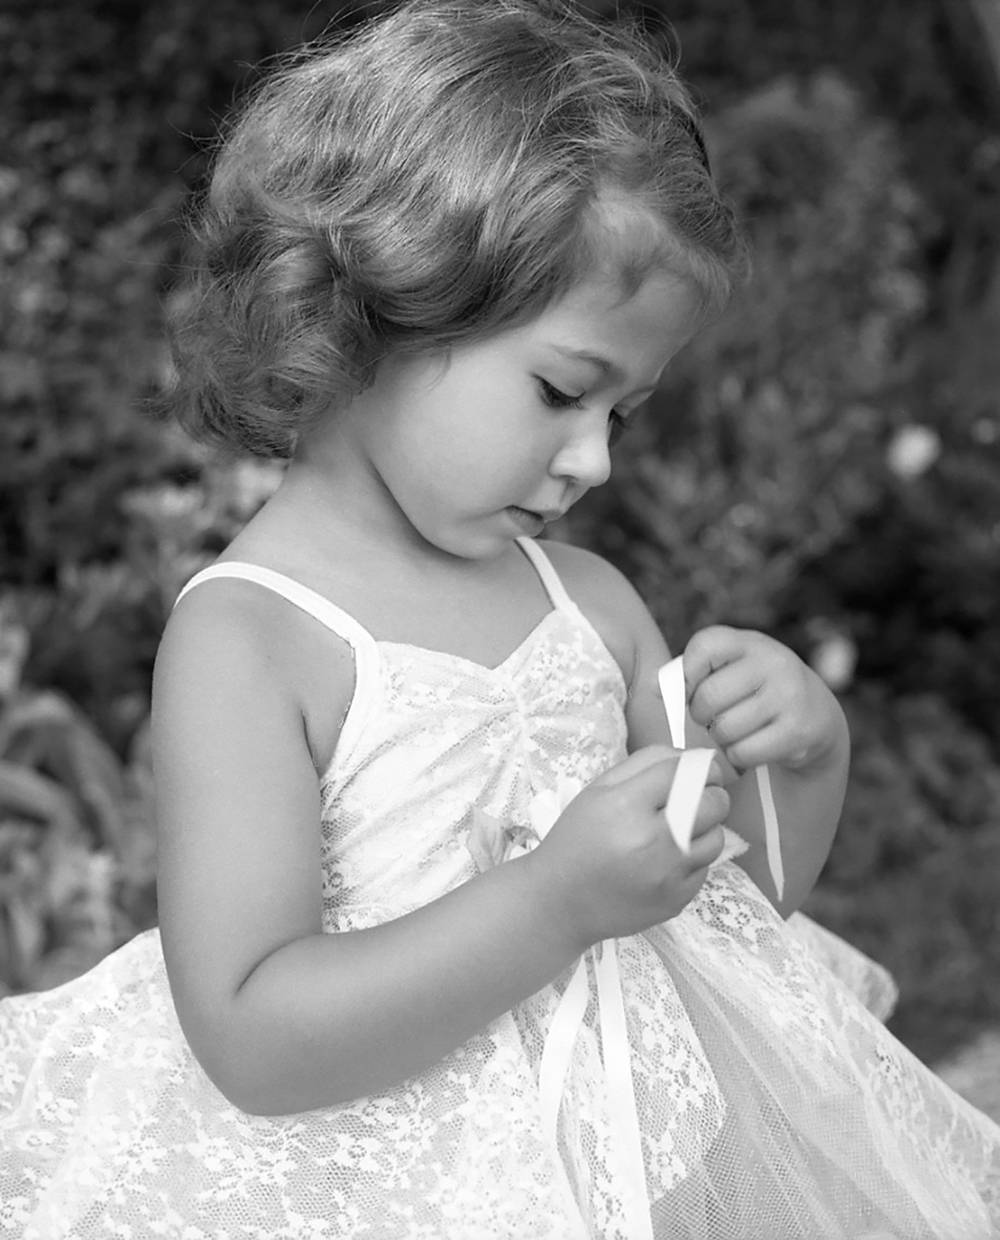 Bow | San Diego Family Photography